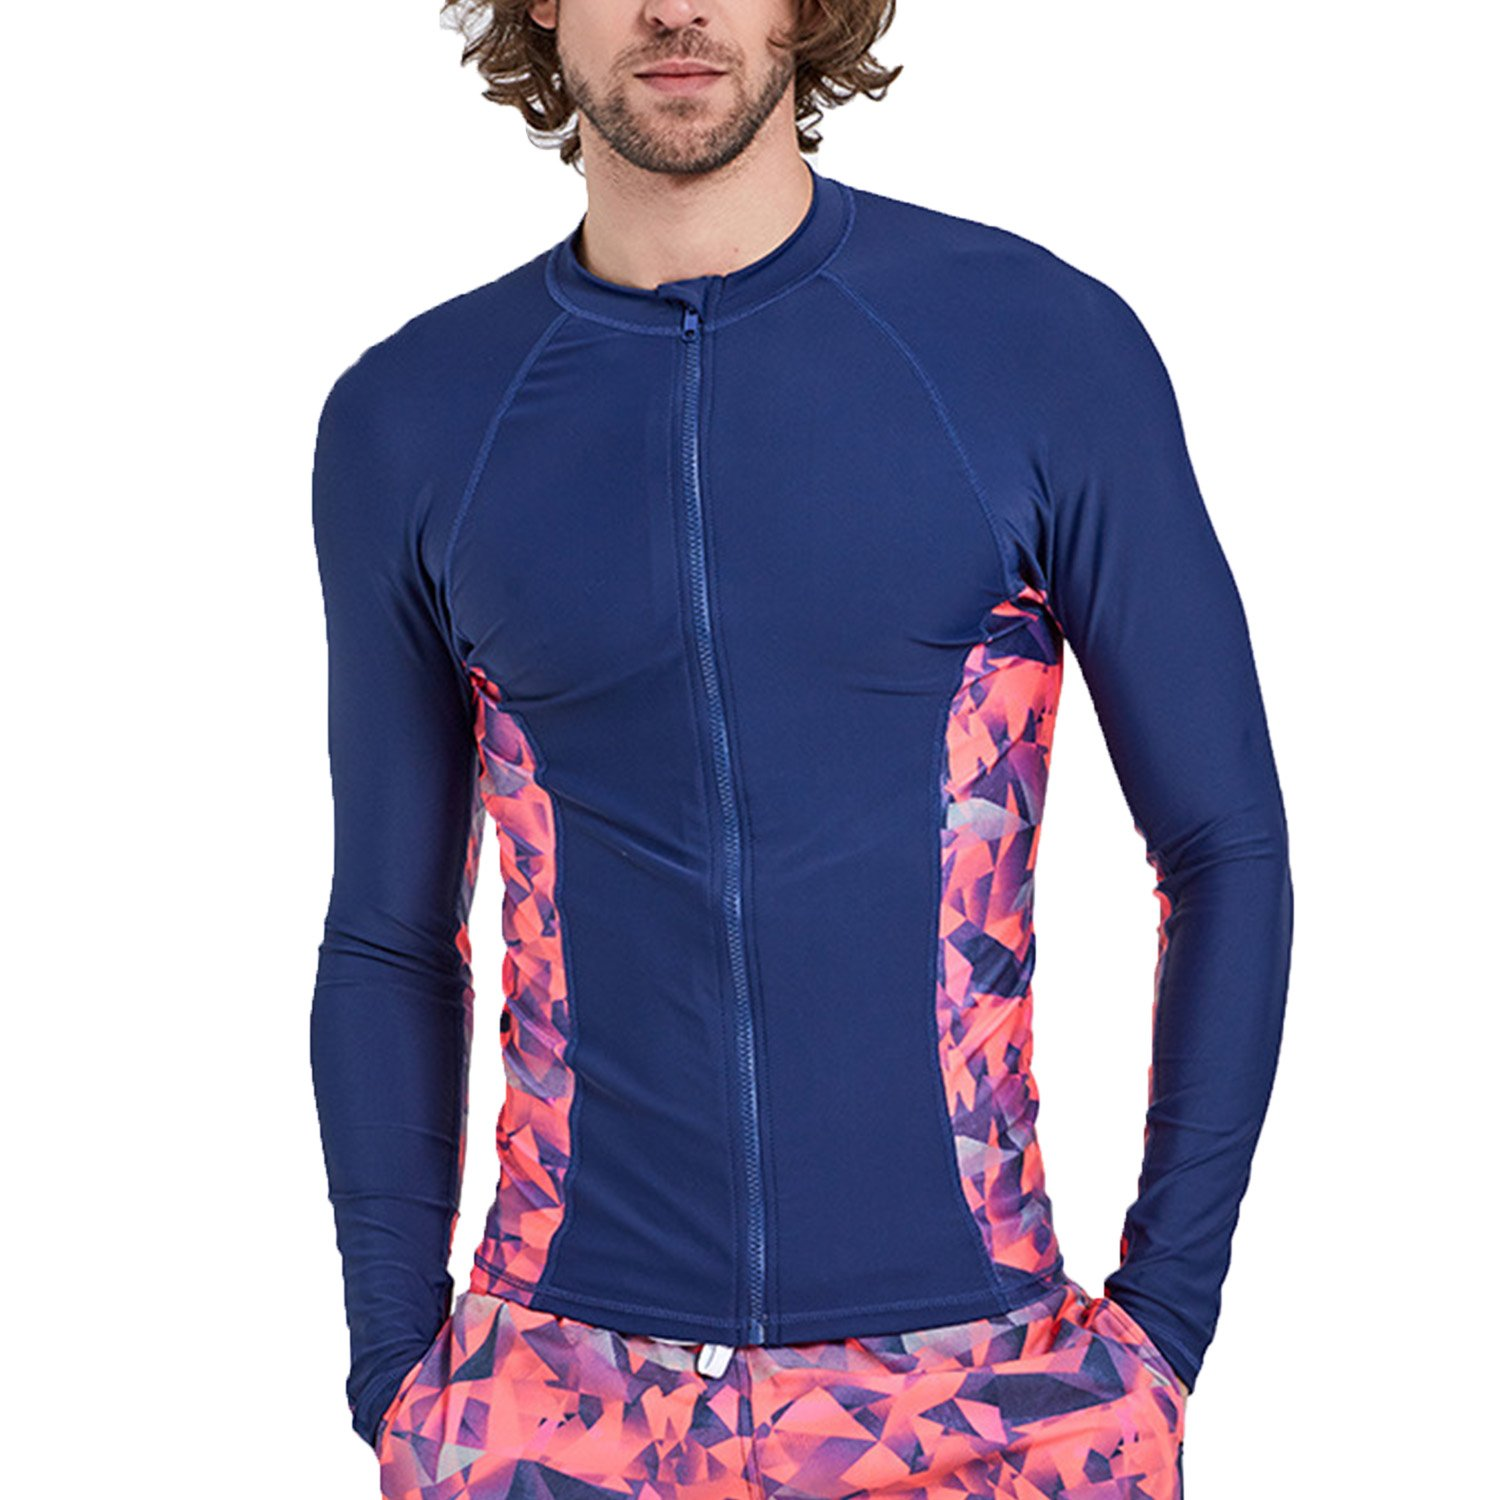 Mens Long Sleeve Rash Guard UV Sun Protection Printed Zipper Surfing One Piece Swimsuit Bathing Suit Running Jacket Pink-7004 US S/Asian L